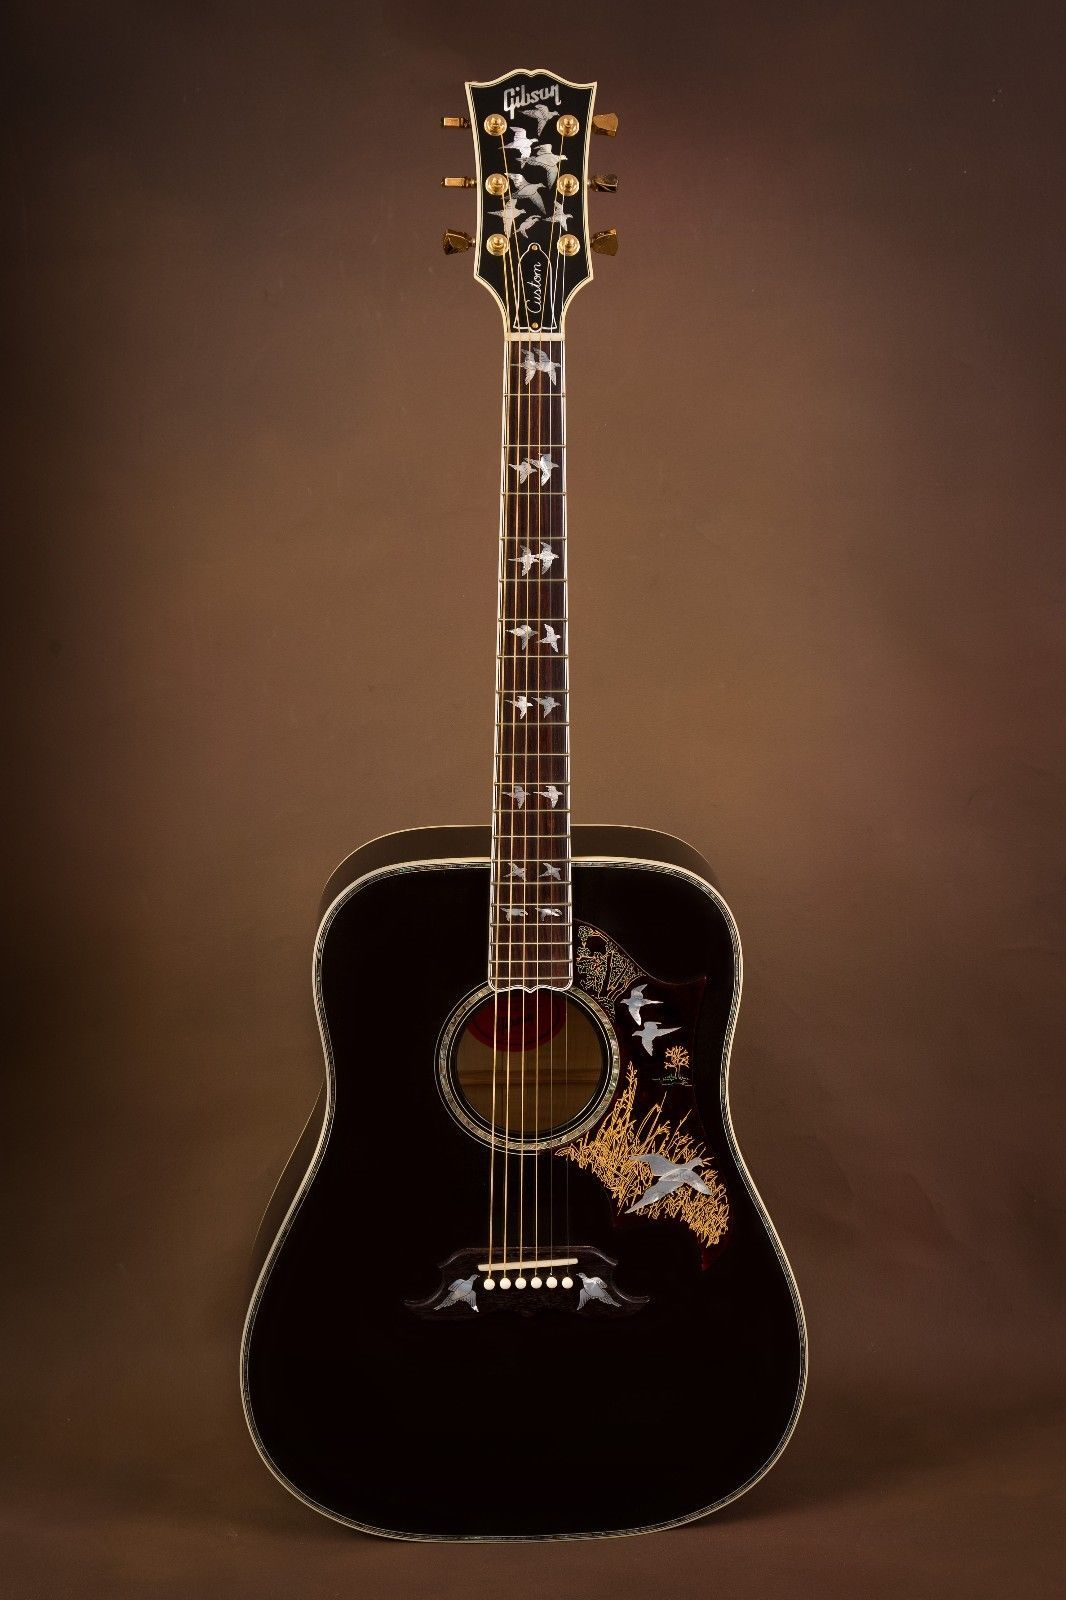 2014 gibson custom doves in flight trans black acoustic guitar in 2019 guitars gibson. Black Bedroom Furniture Sets. Home Design Ideas